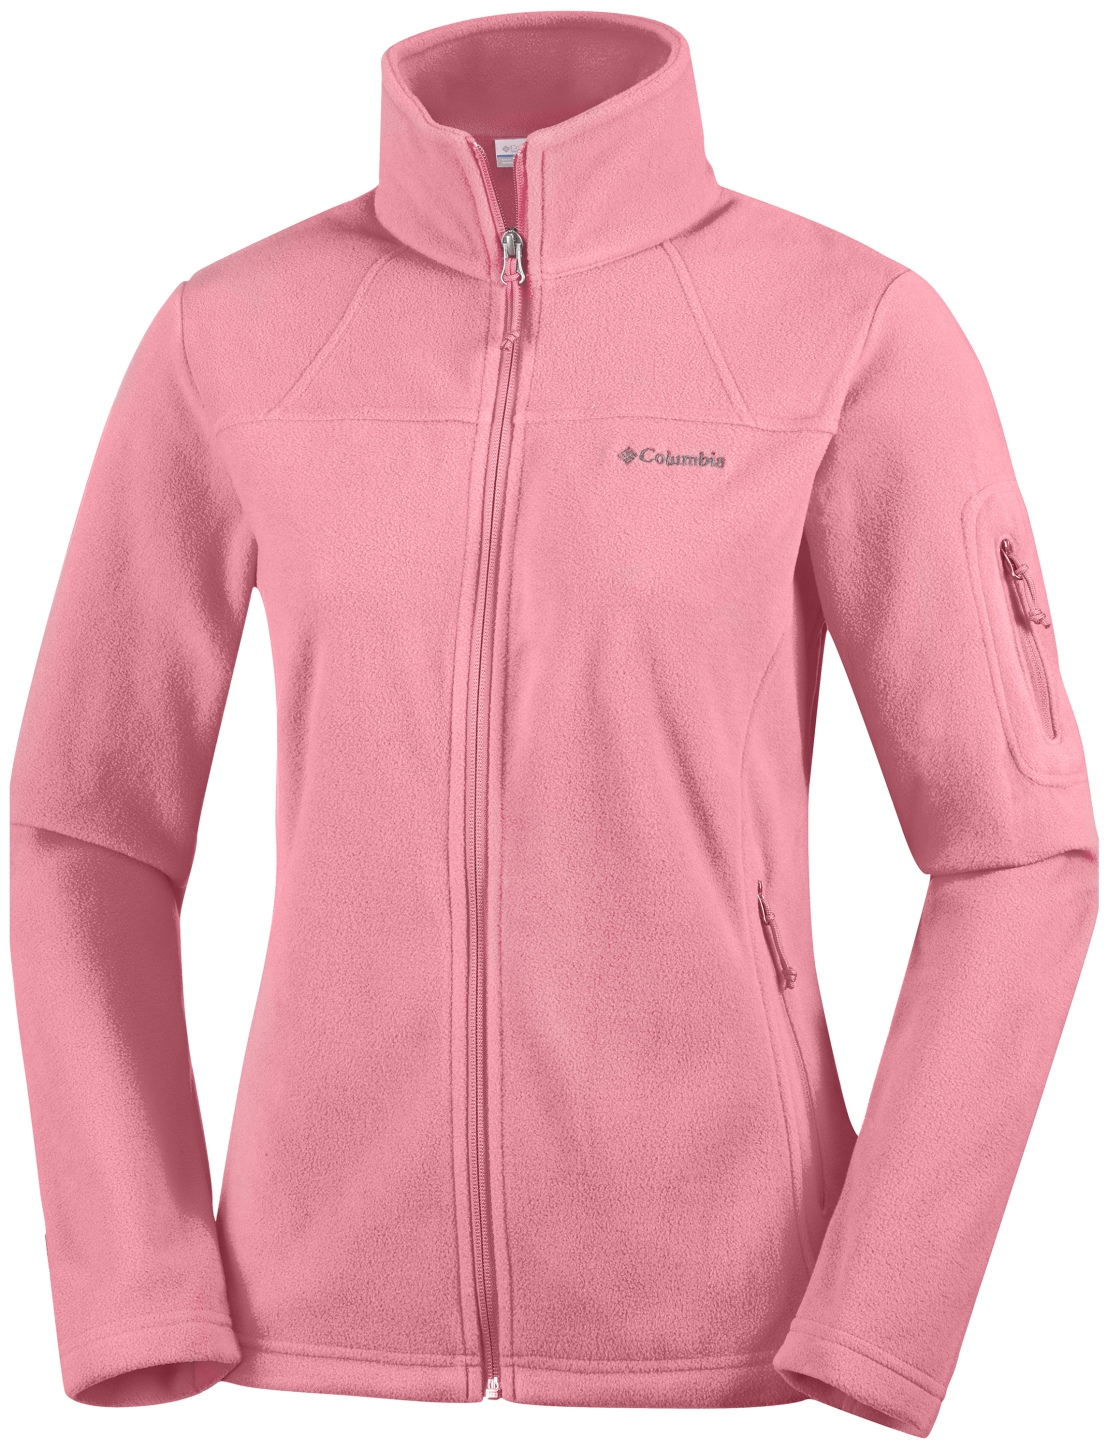 Columbia Fast Trek II Jacke für Damen Canyon Rose-30